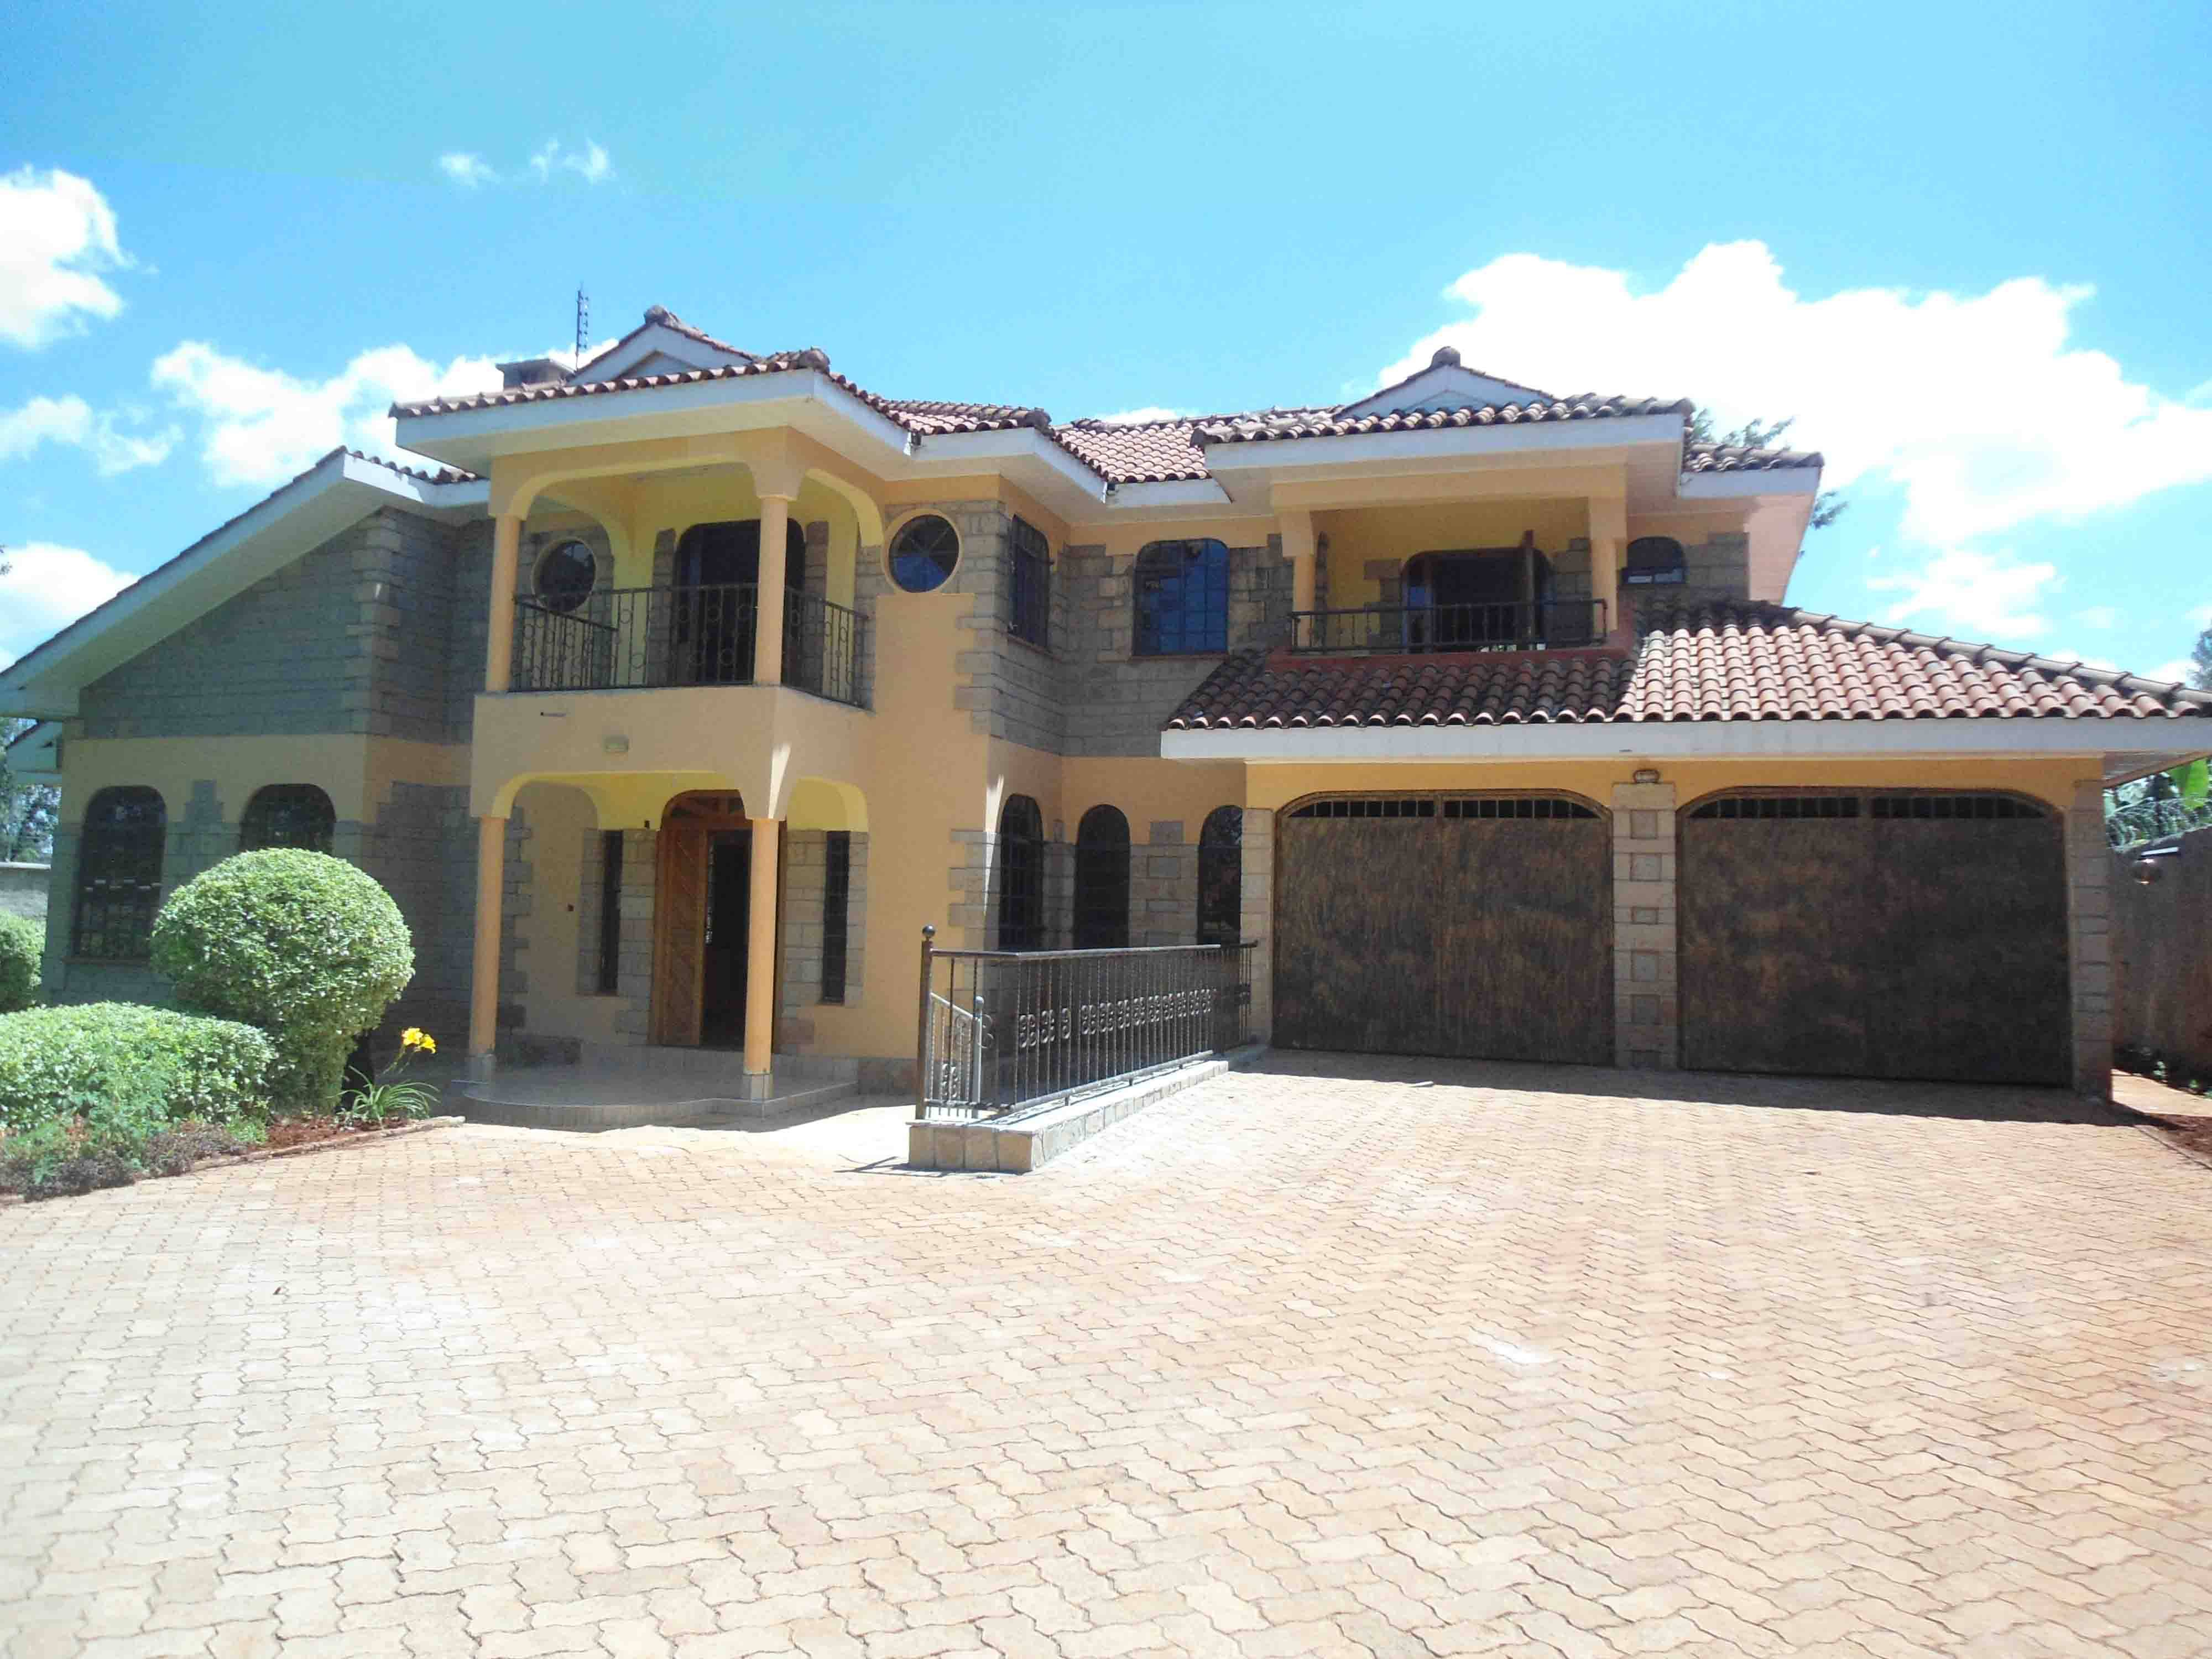 House for rent nairobi nairobi area kenya 4br new town house to let in runda md1788941 300000 kes 2013 01 19 mondinion com global real estate